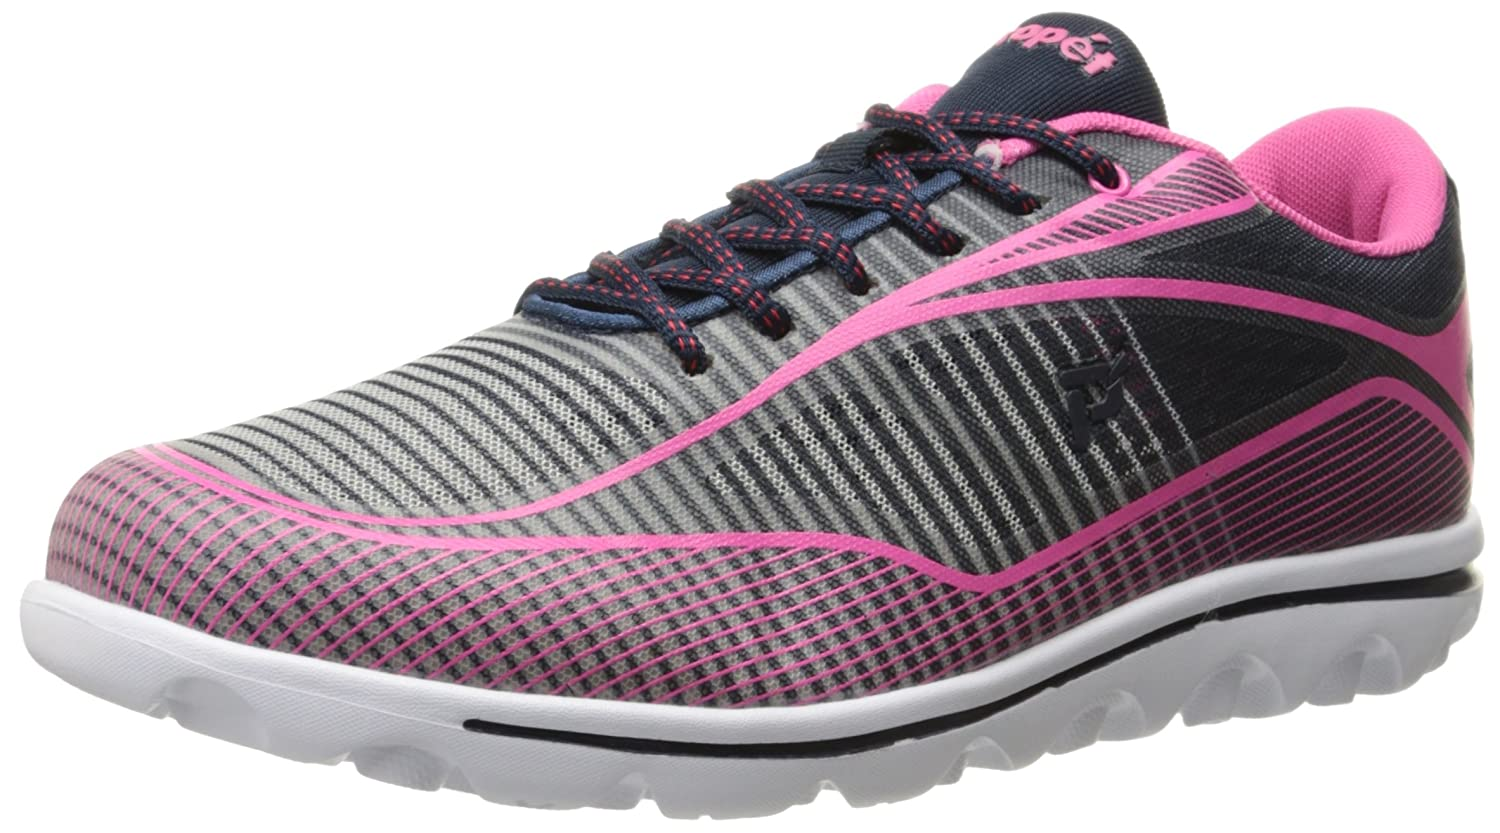 Propet Women's Billie Walking Shoe B0118BM2IW 9 2E US|Navy/Pink